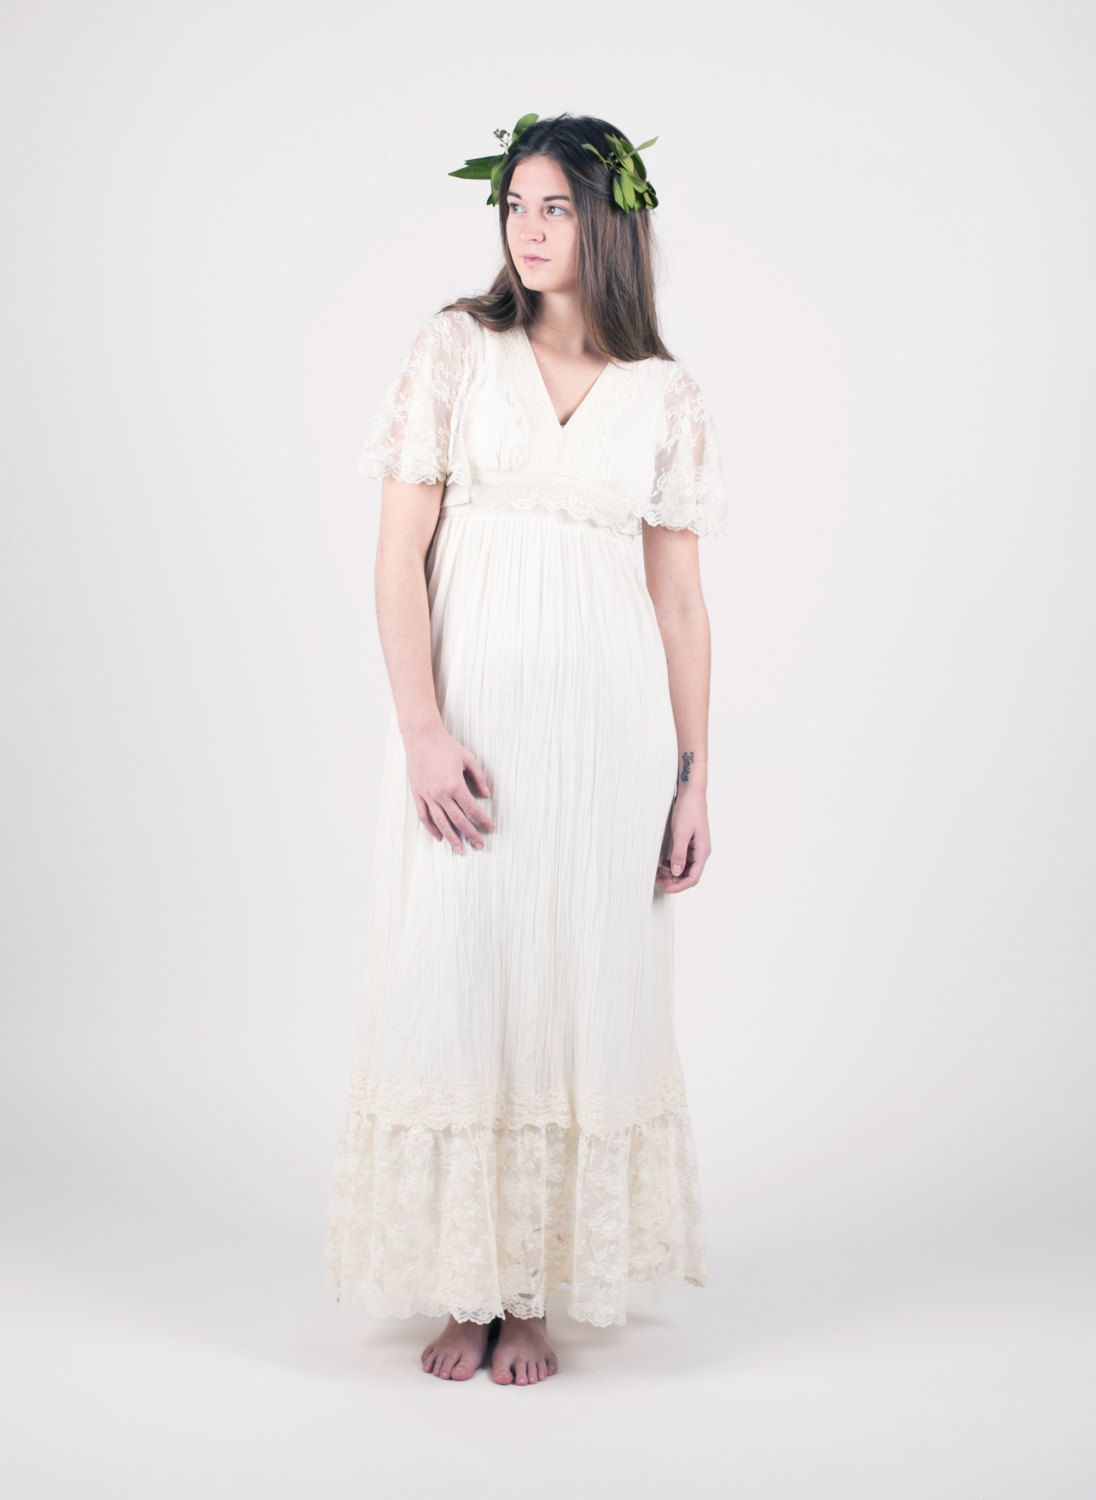 S prairie dress cream lace maxi dress boho wedding dress